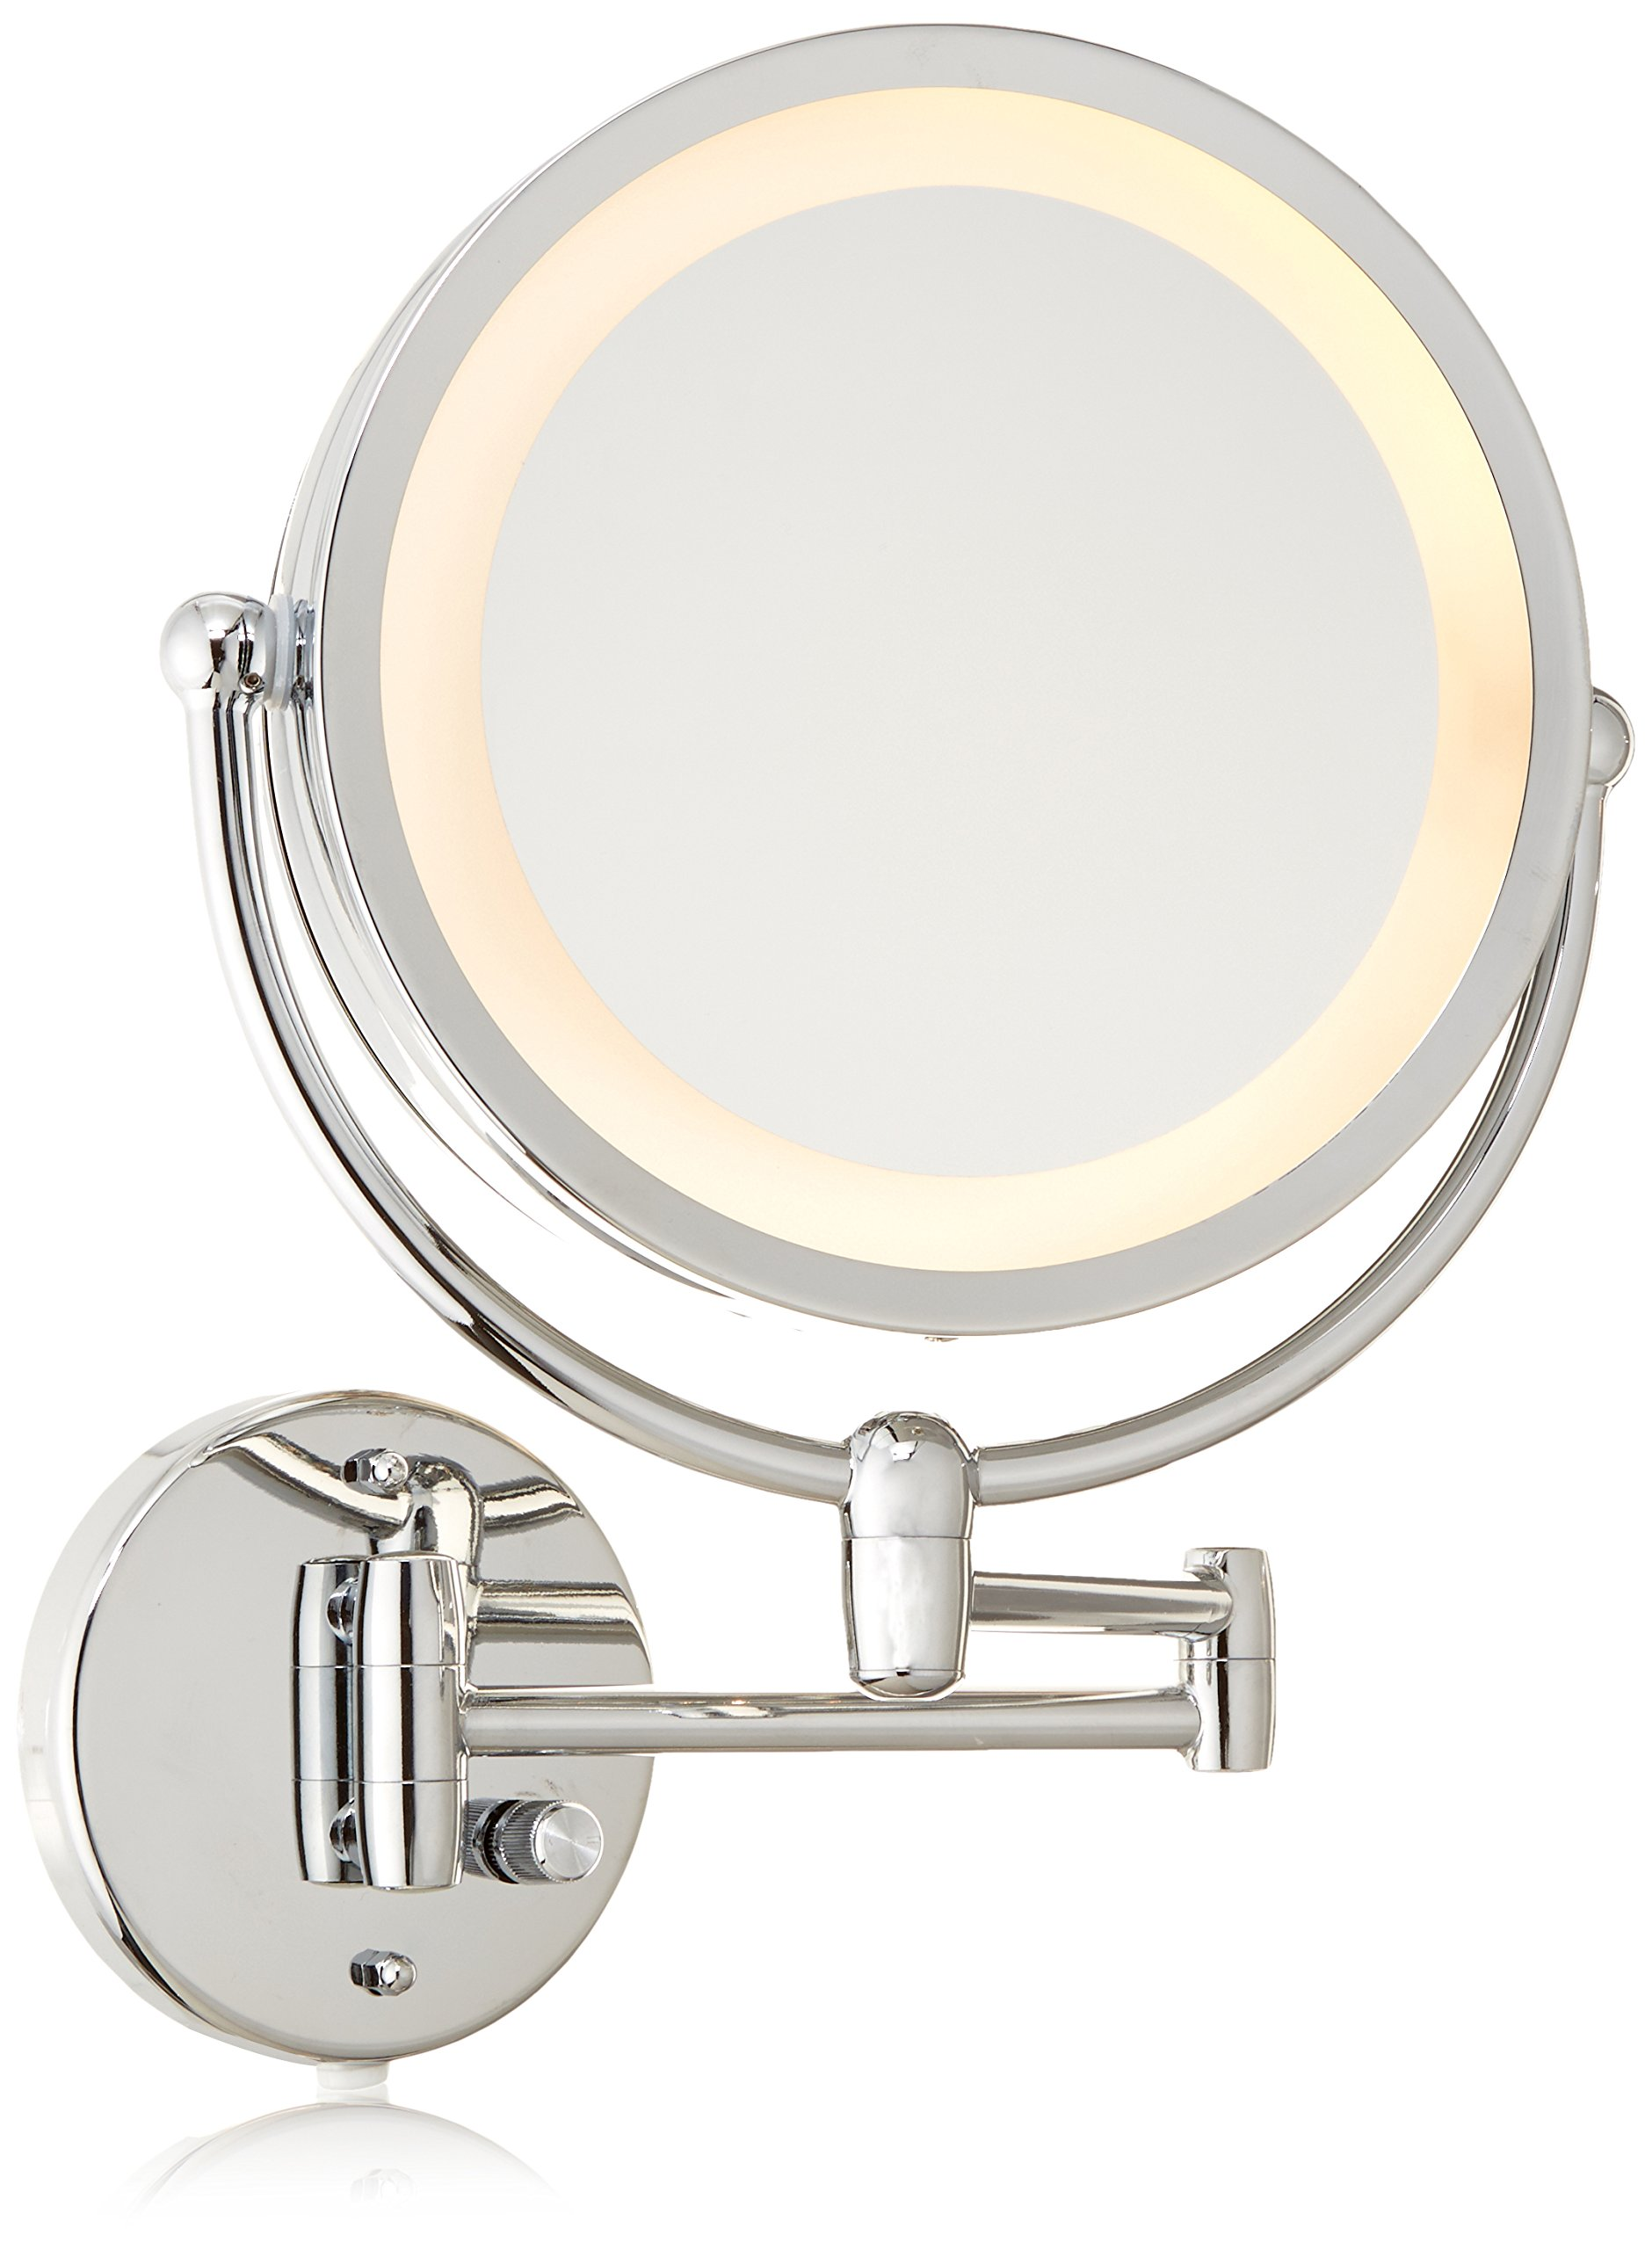 Danielle Creations Chrome Revolving Wall-Mounted Lighted Mirror, 10X Magnification